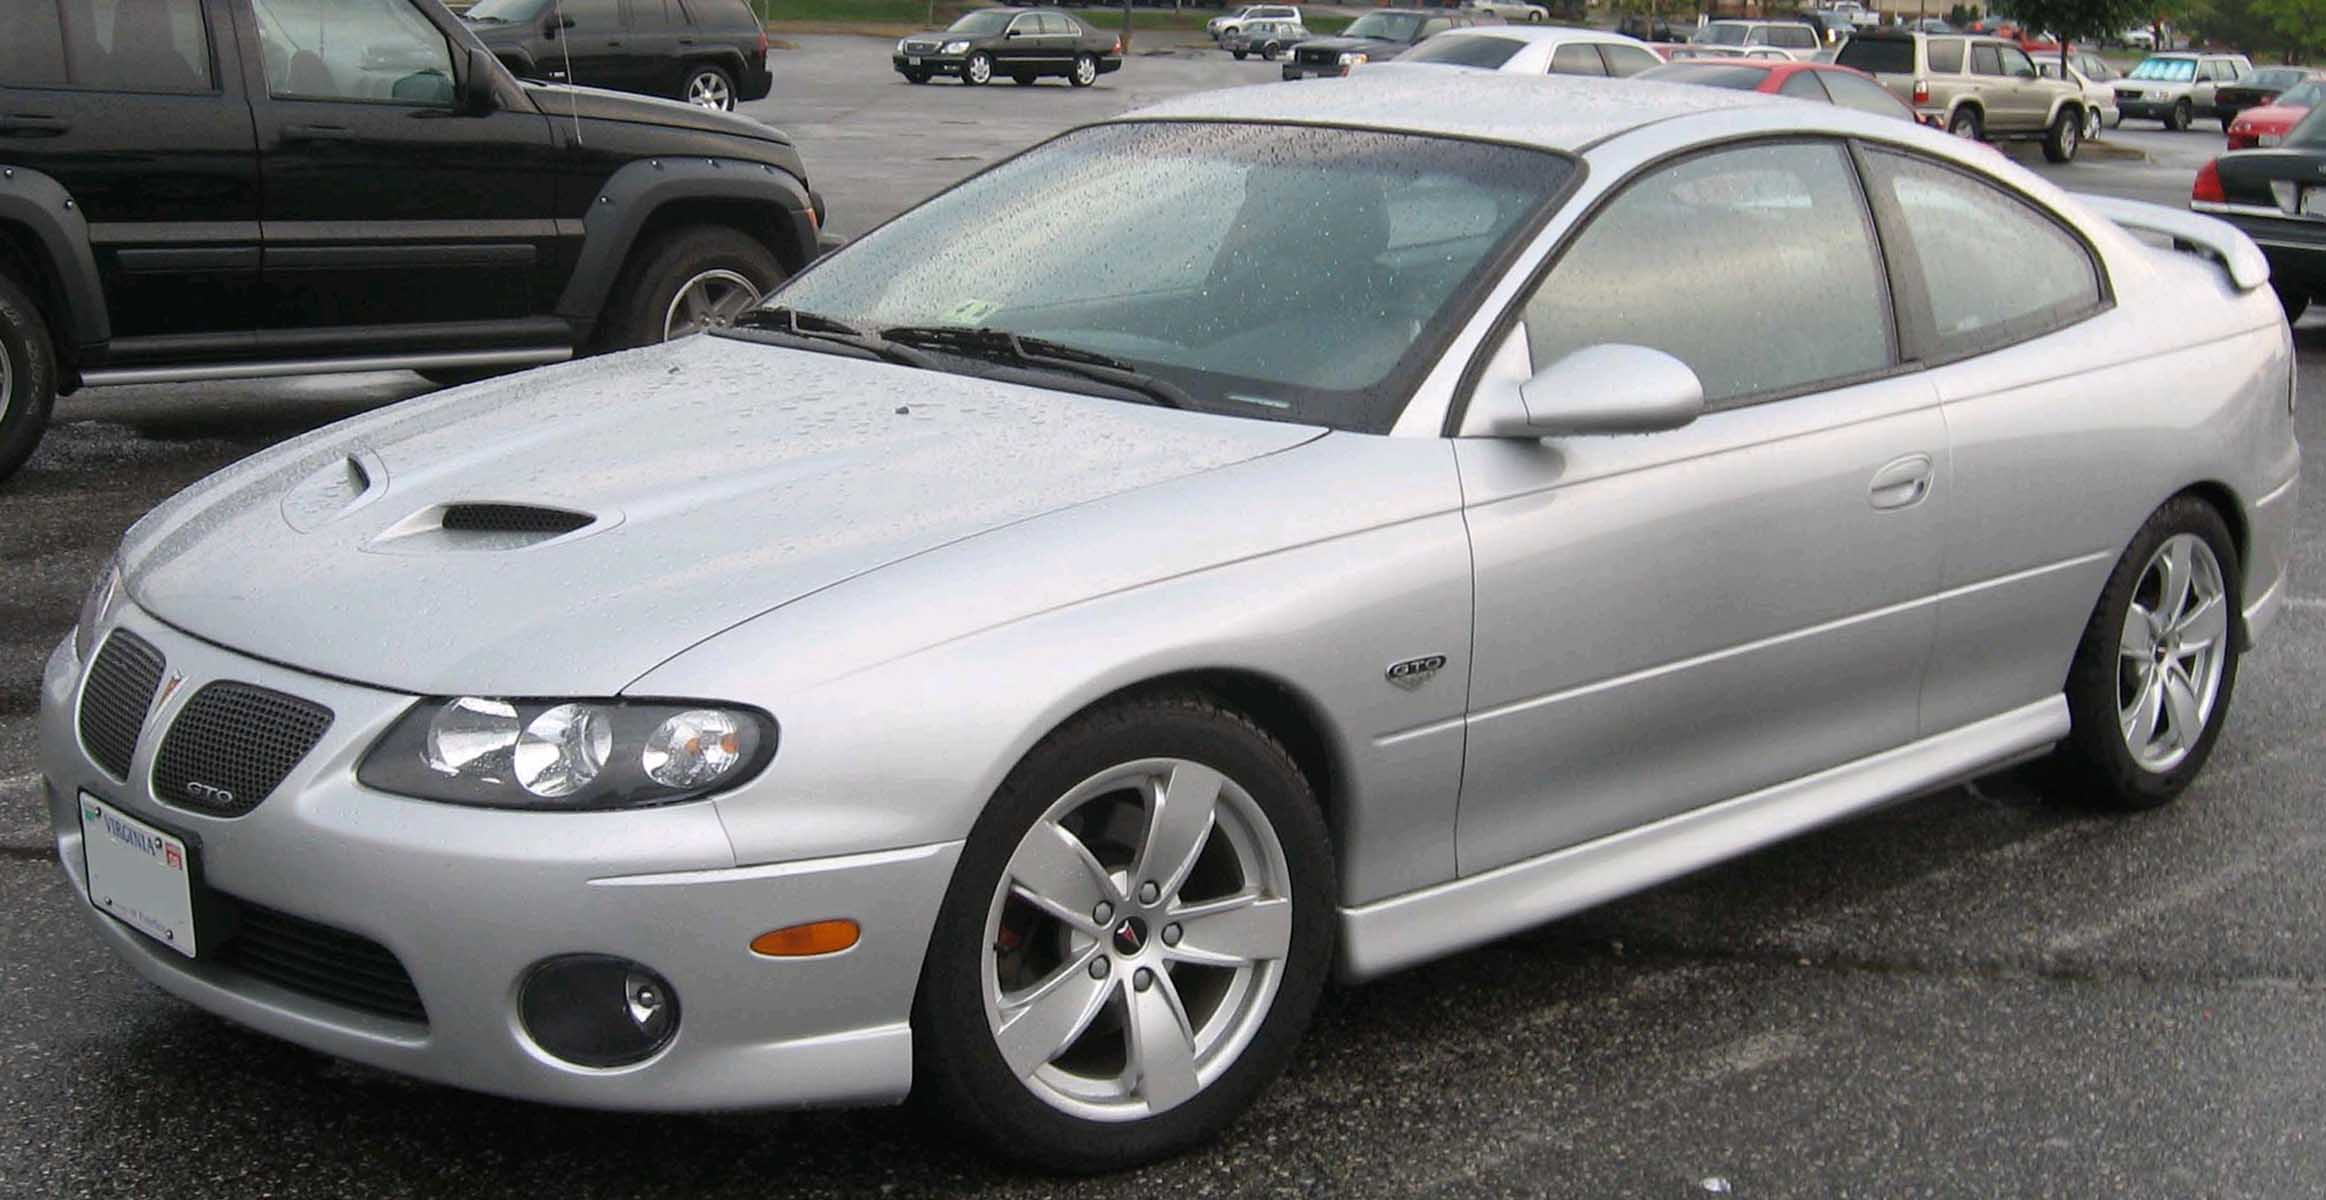 Pontiac GTO 1999: Review, Amazing Pictures and Images – Look at the car